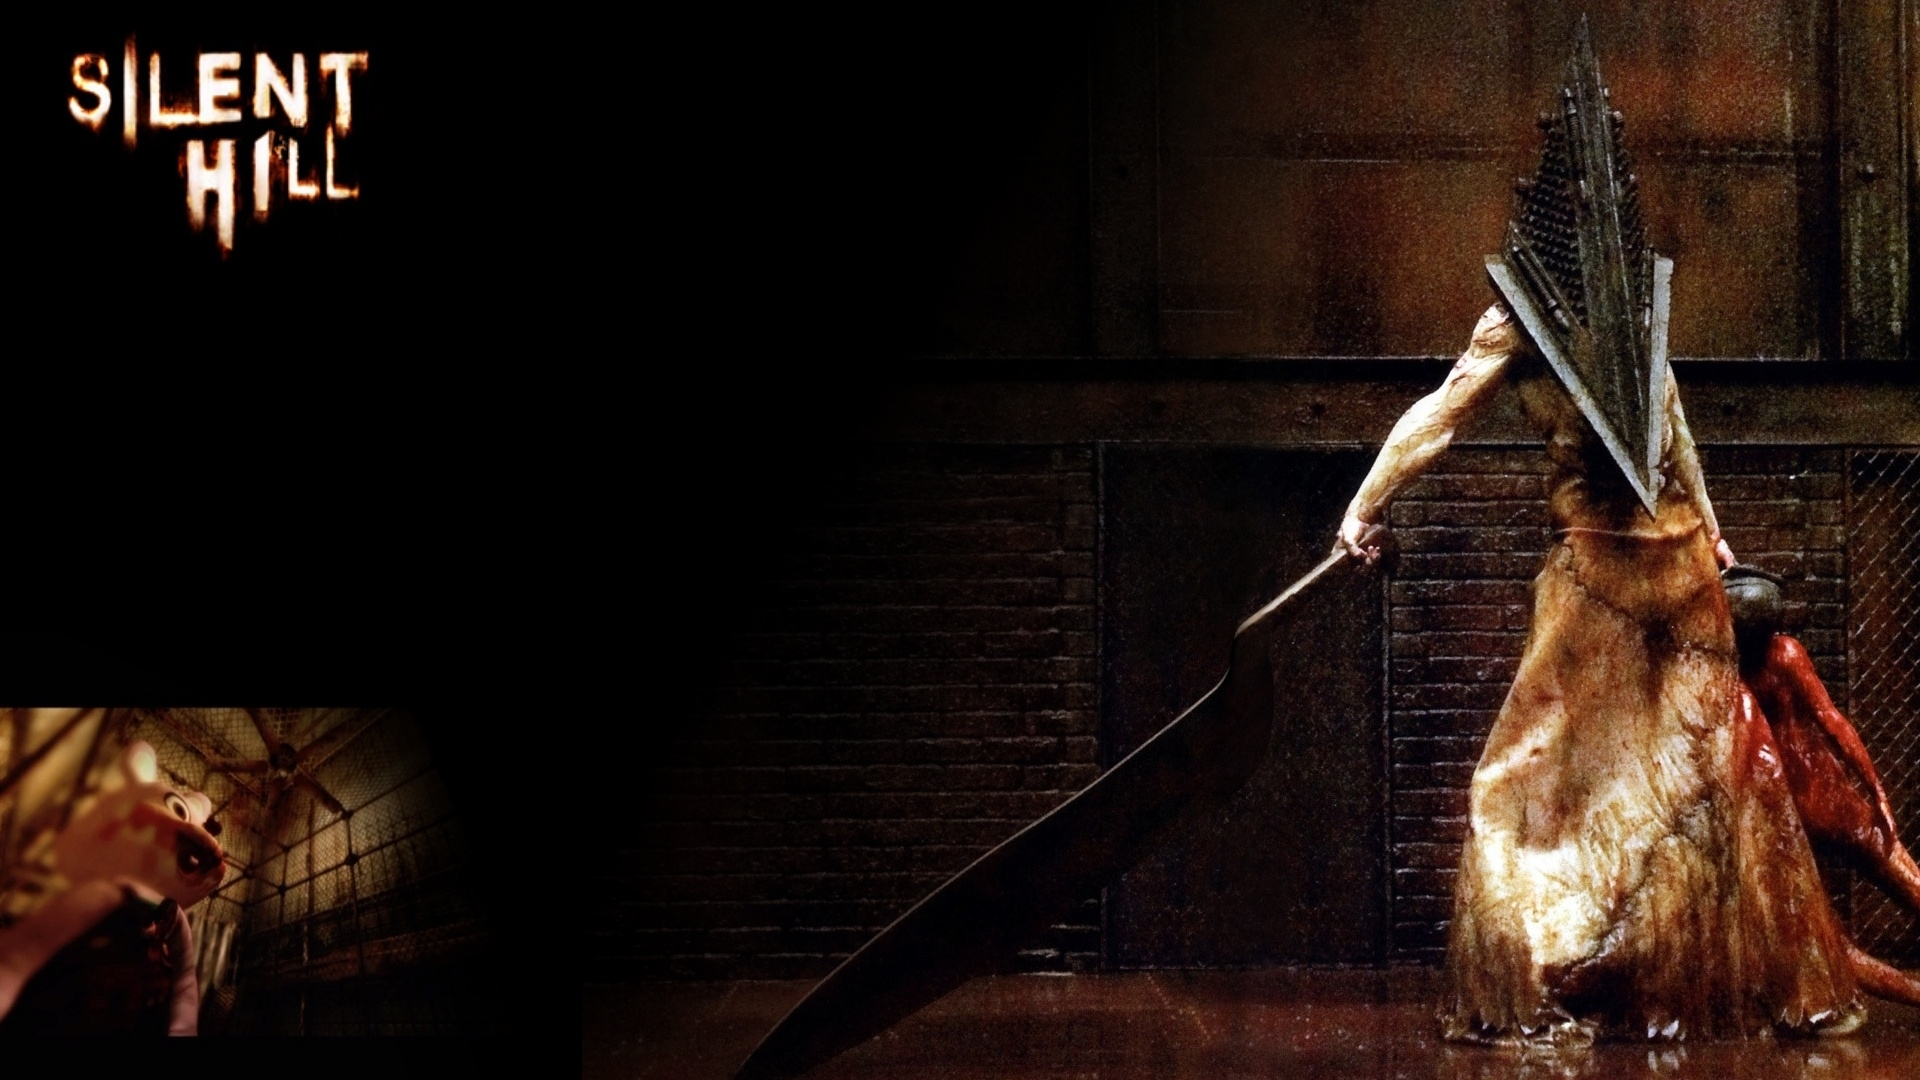 Silent Hill Wallpapers Silent Hill Wallpaper 6311562 Fanpop